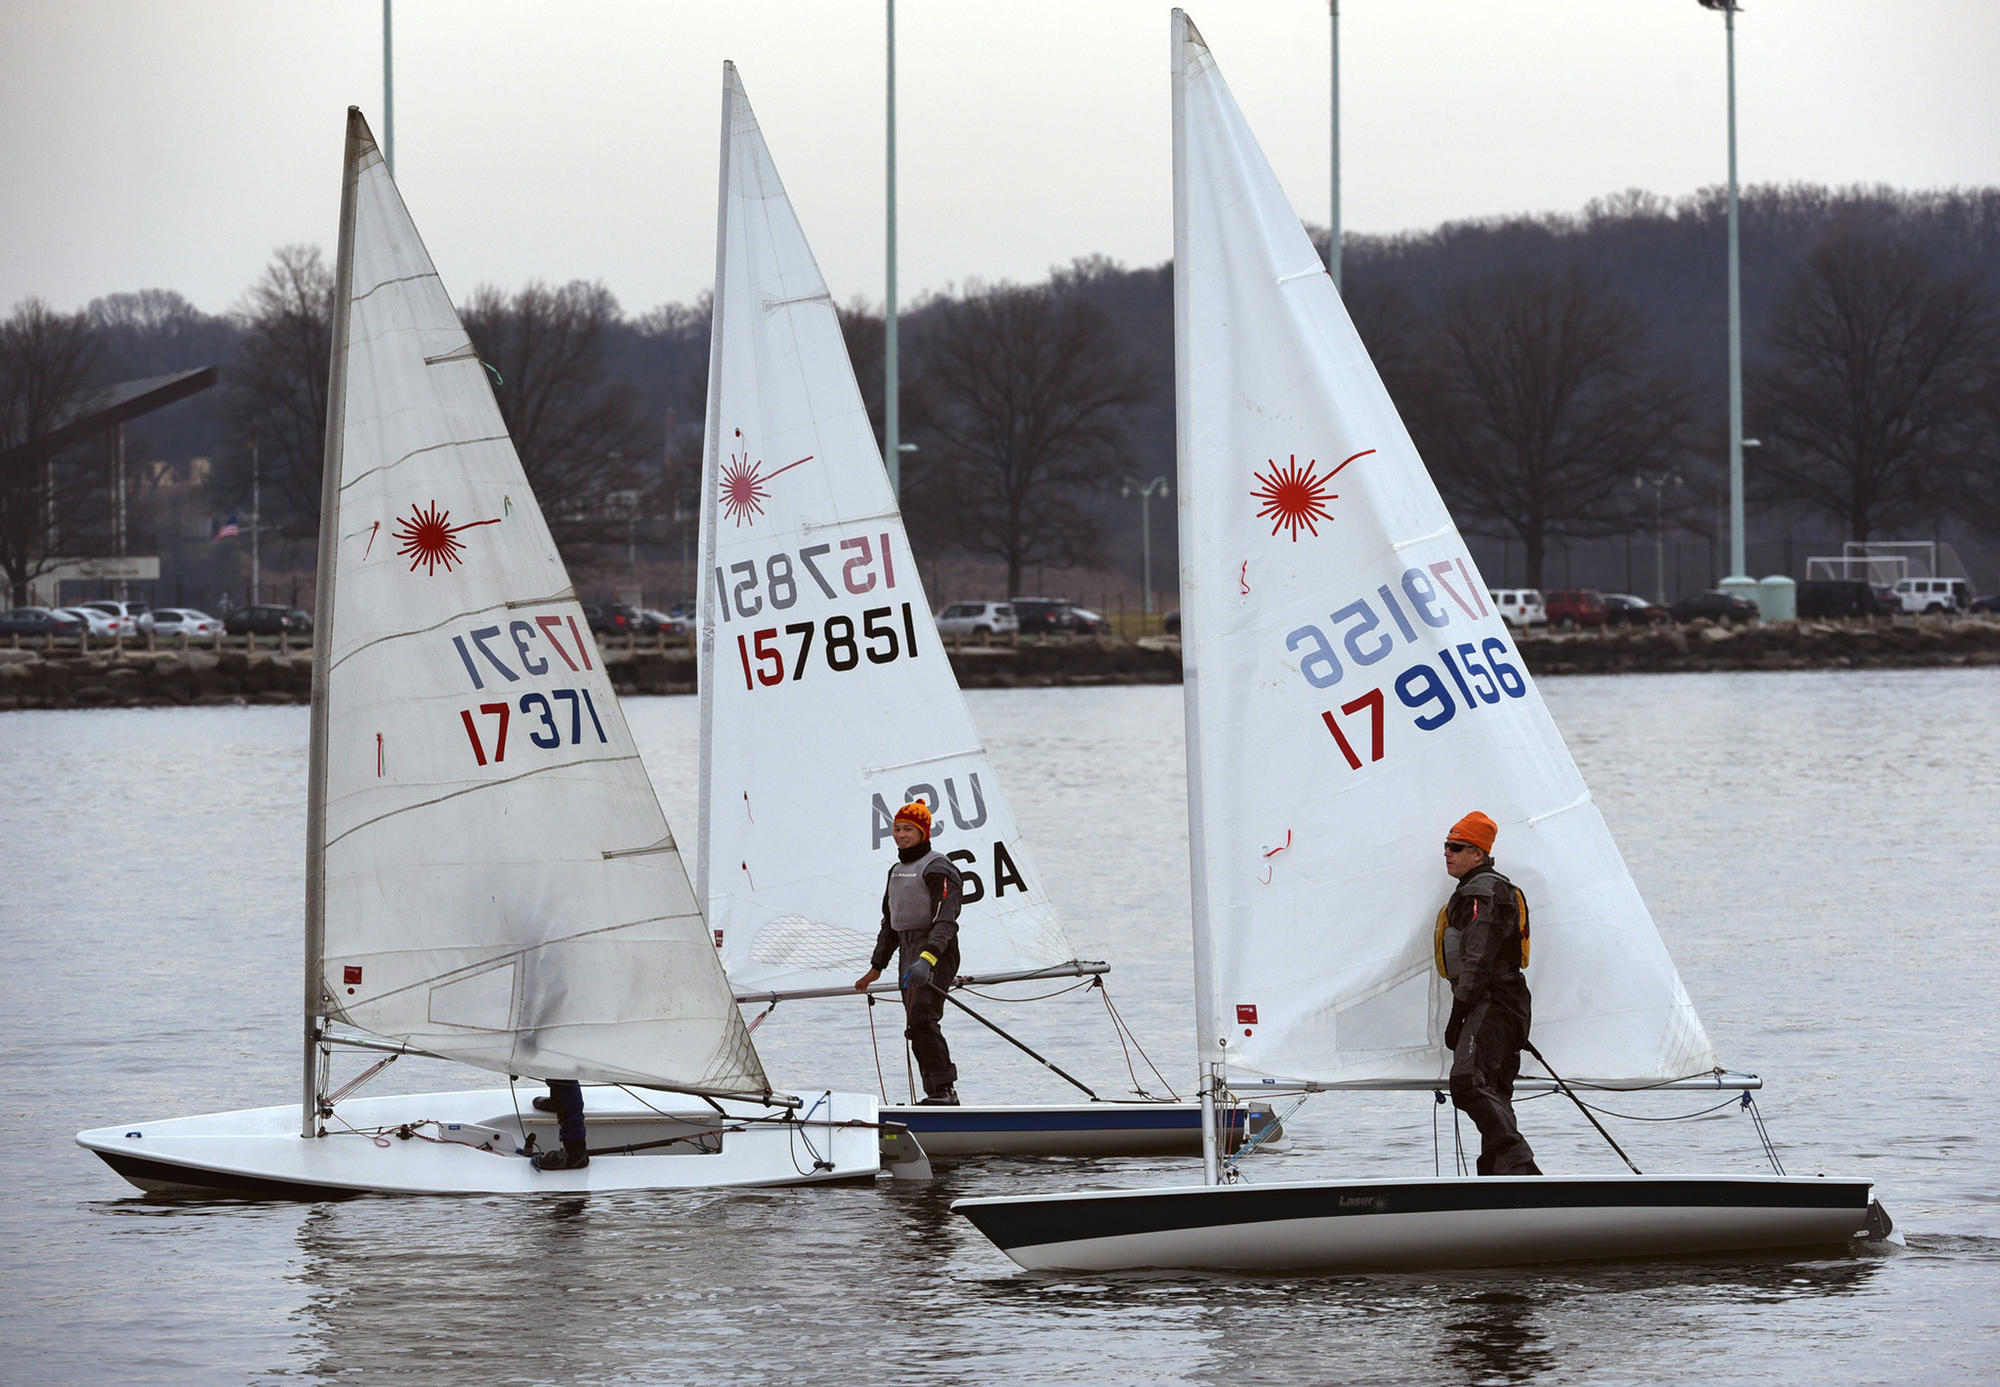 Frostbite sailing on the Chesapeake Bay: Where even the ice